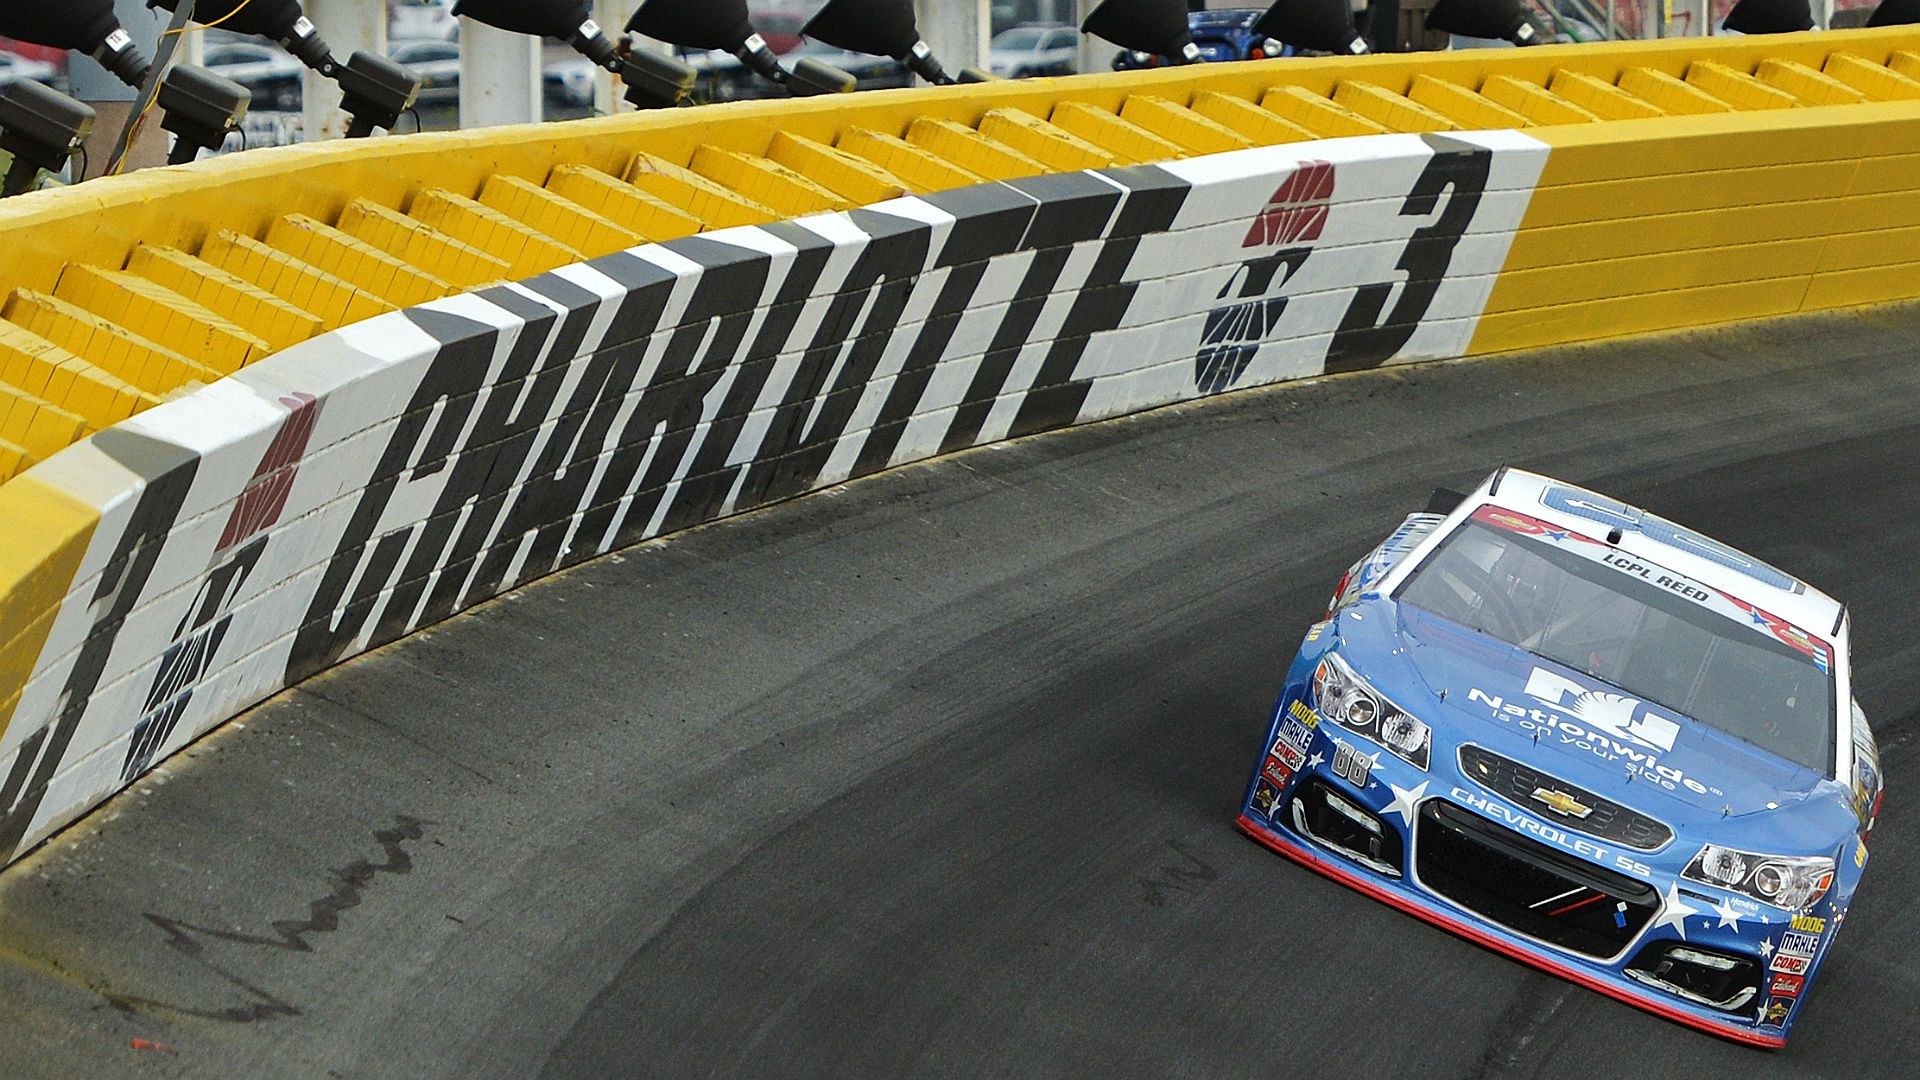 NASCAR Tweaks Stage Format For Coca-Cola 600 At Charlotte Motor Speedway